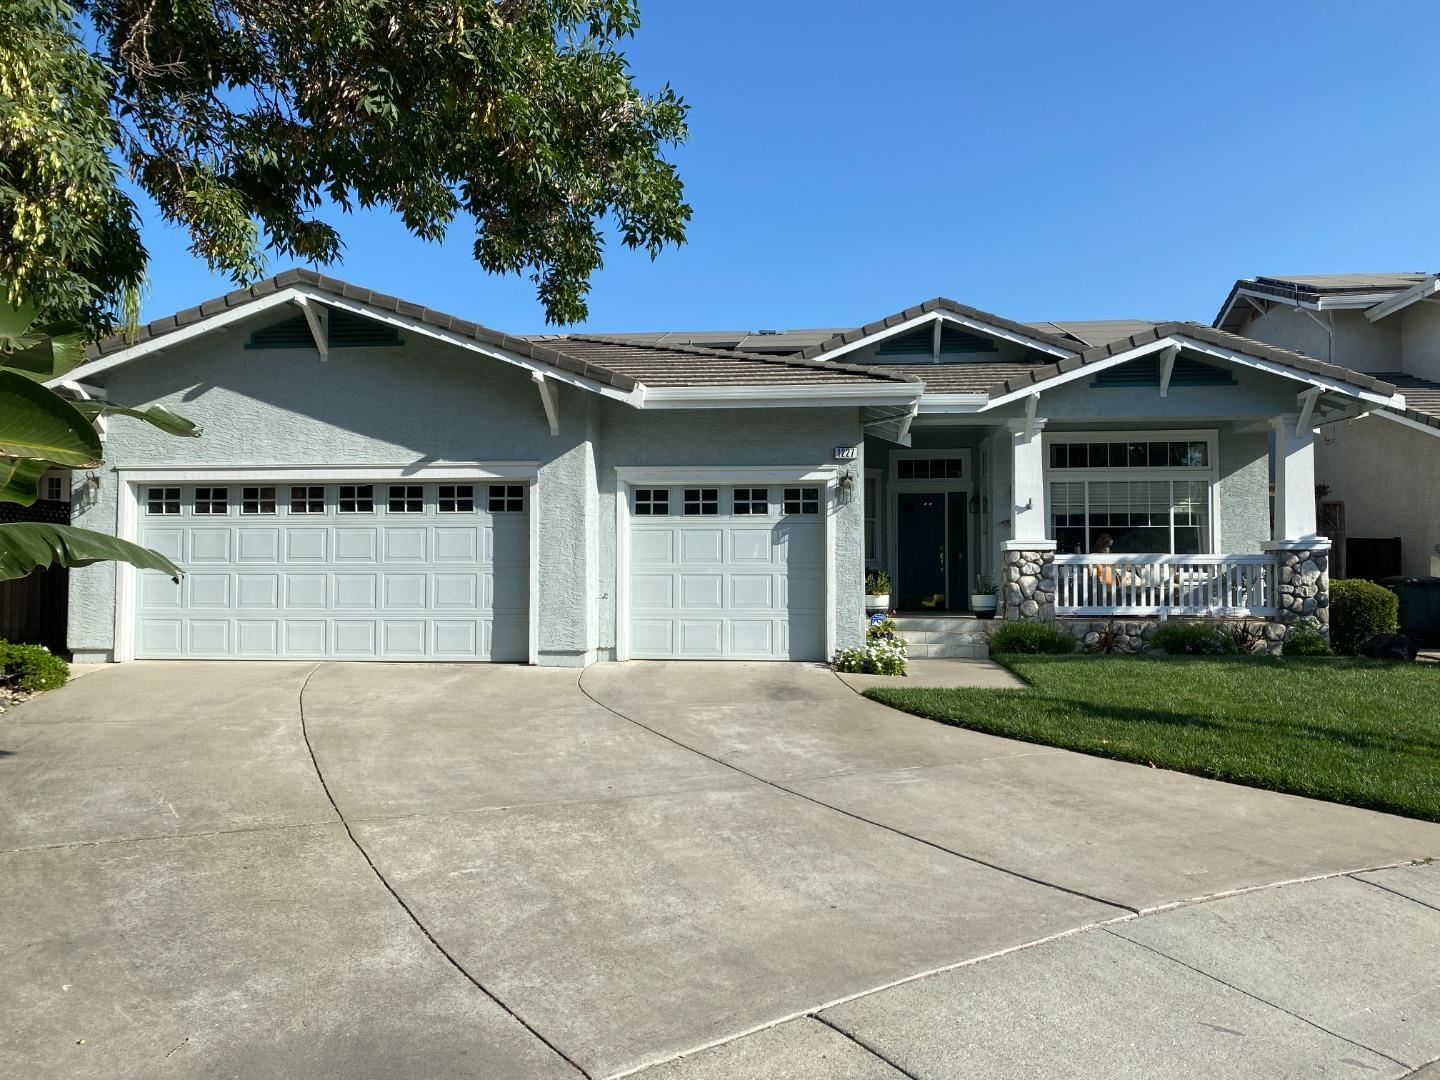 Photo for 1227 Blue Parrot Court, GILROY, CA 95020 (MLS # ML81861467)